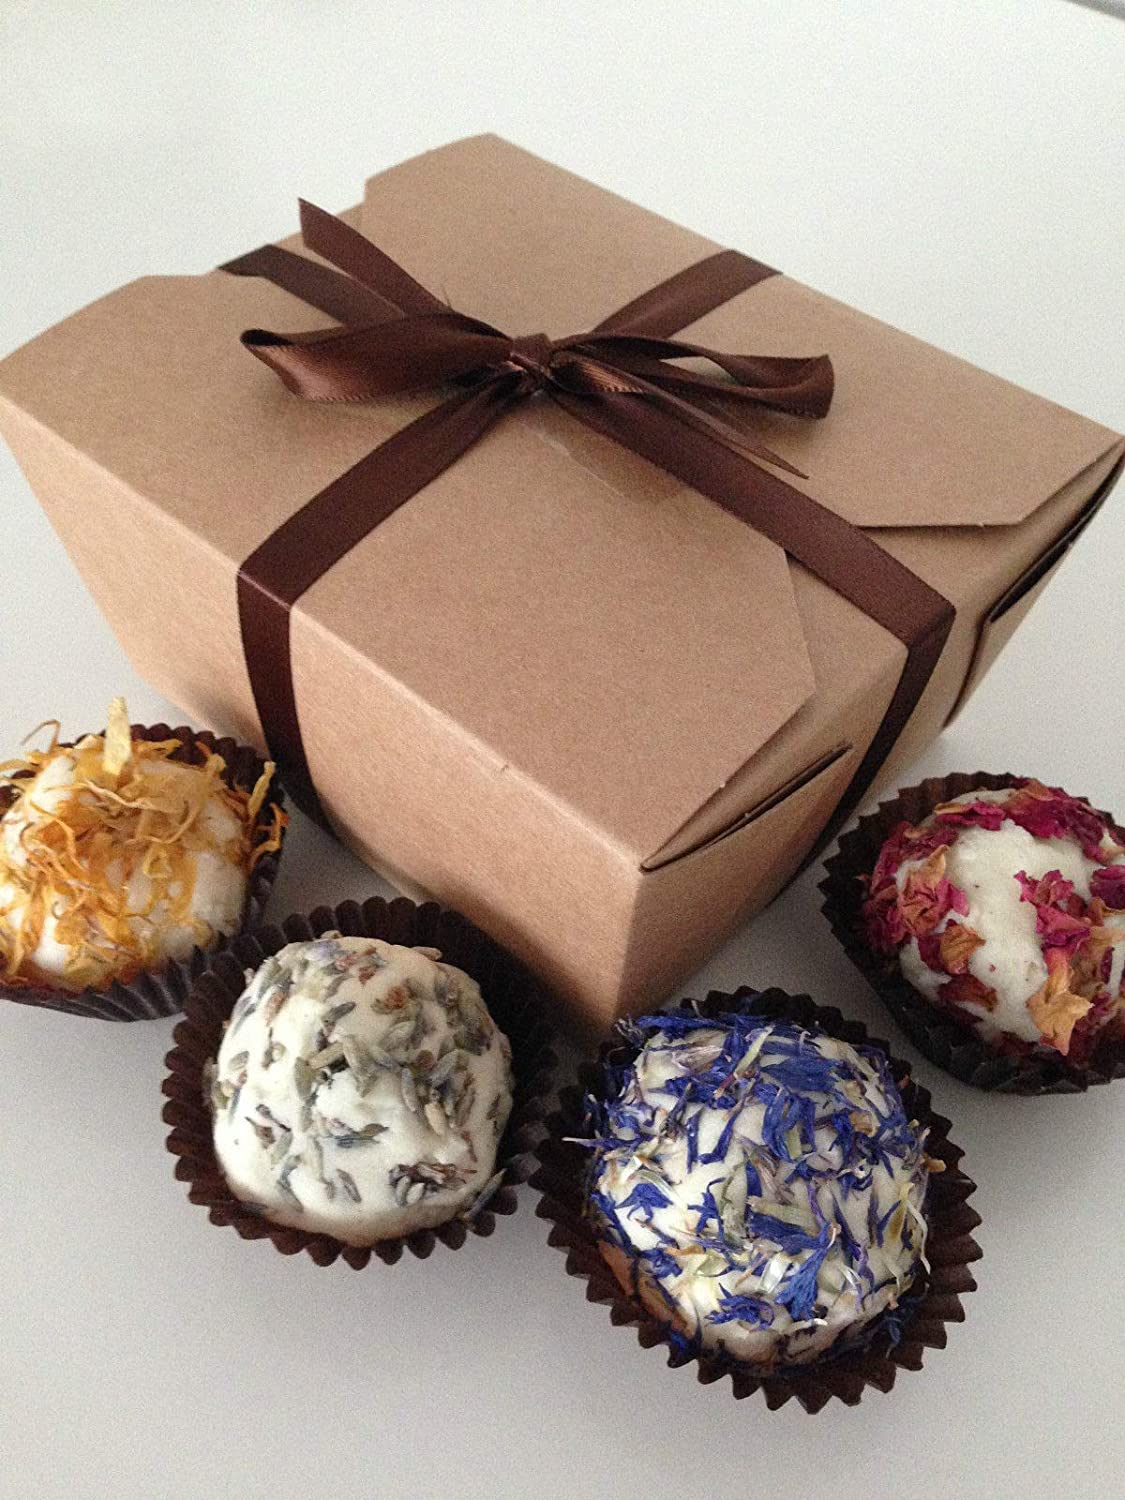 Bathtime Boutique - Cocoa Butter Bath Bomb Truffles Gift Box. Sprinkles or Flowers. Perfect Christmas & Birthday Gifts (Sprinkles) Bathtime Boutique Ltd